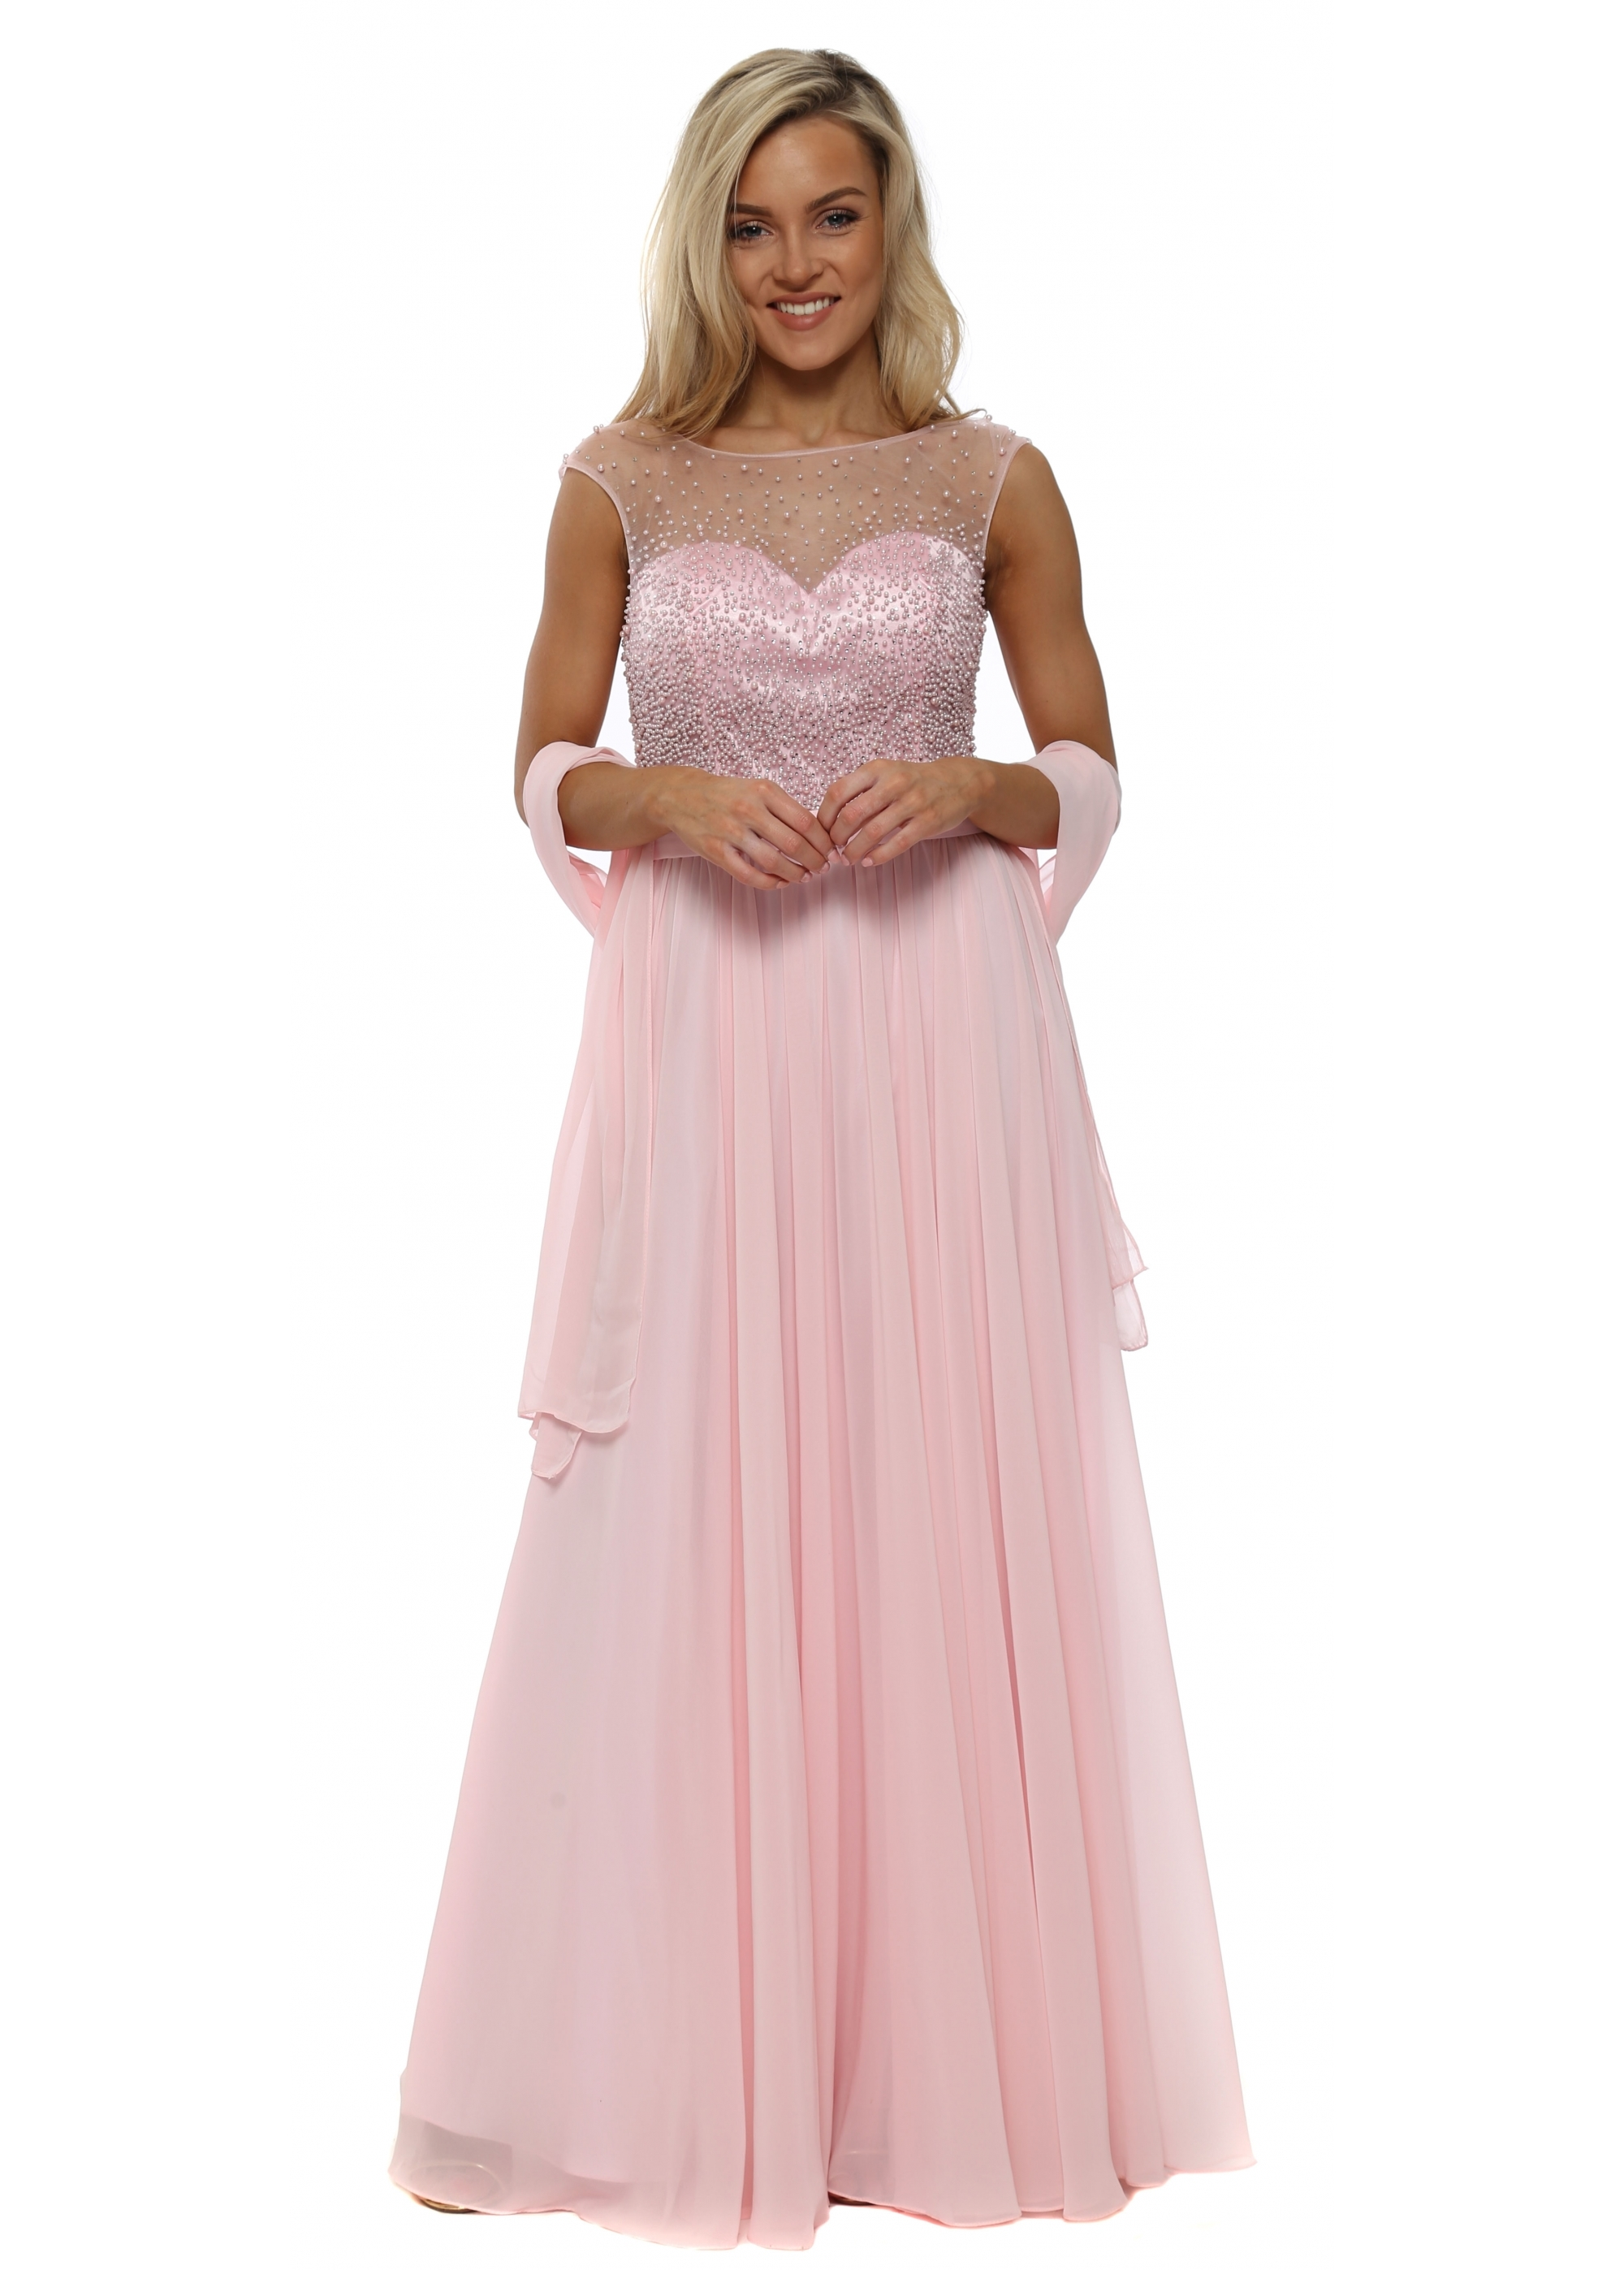 Mascara Dress Mc181162 Pink Pearl Maxi Dress